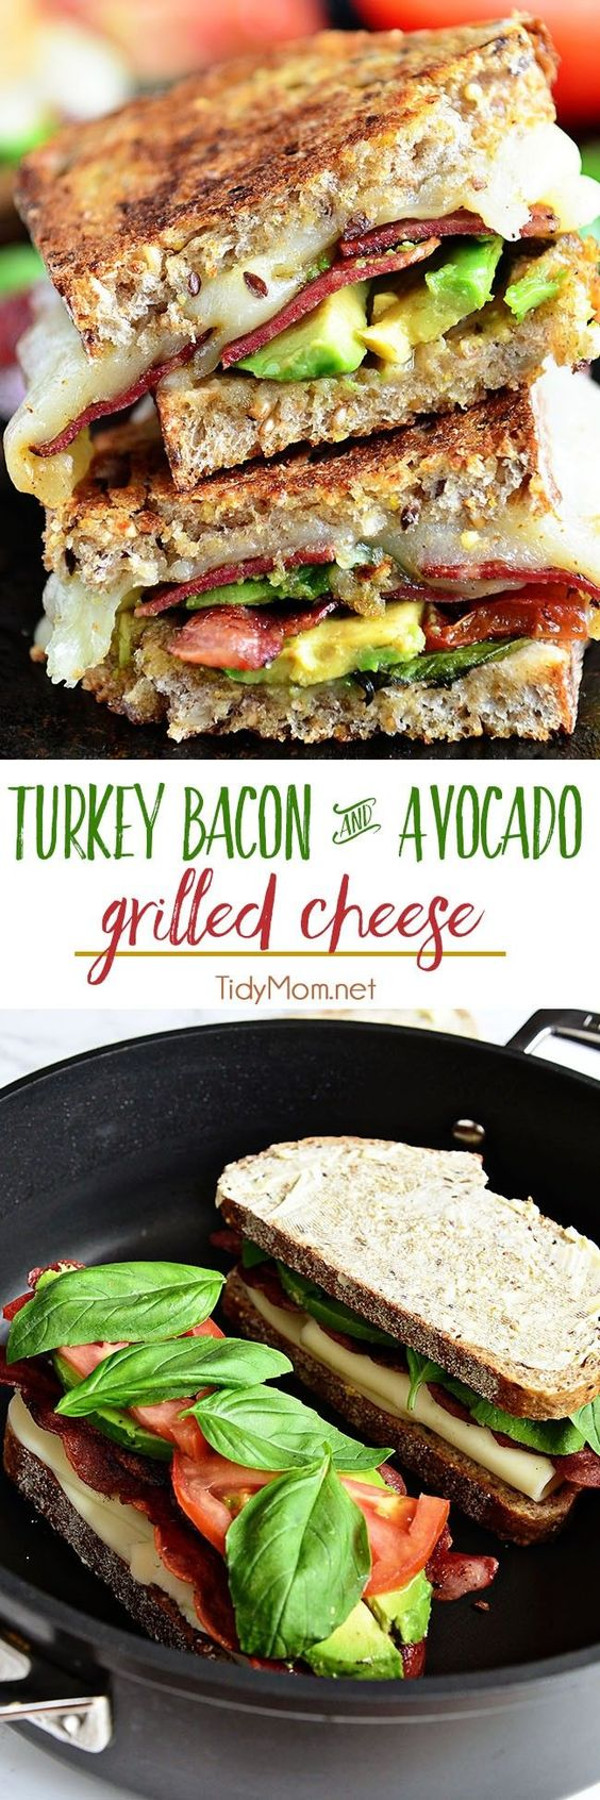 Get the recipe Turkey Bacon & Avocado Grilled Cheese @recipes_to_go